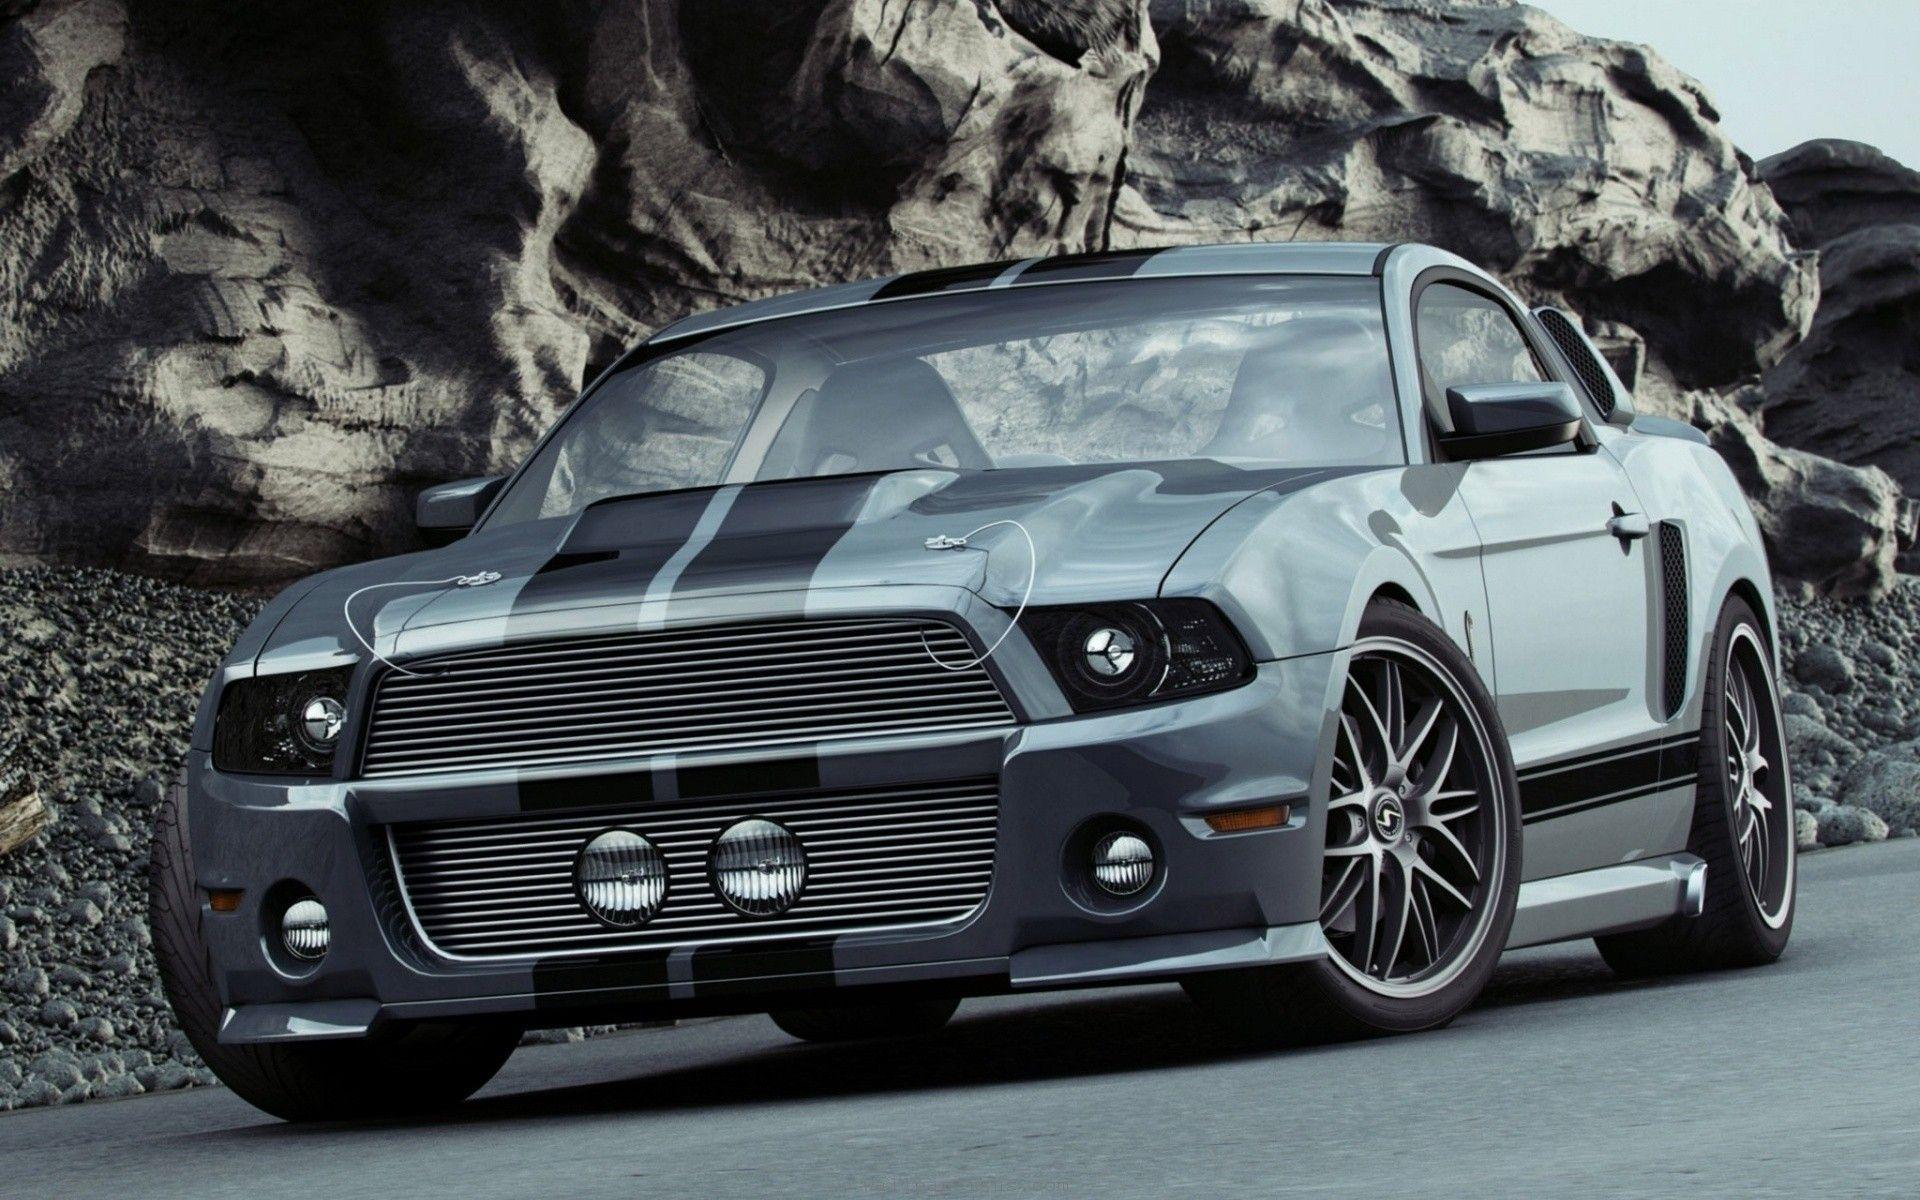 Ford Mustang Shelby Gt500 Eleanor Wallpaper Hd Eleanor Mustang Wallpapers Wallpaper Cave